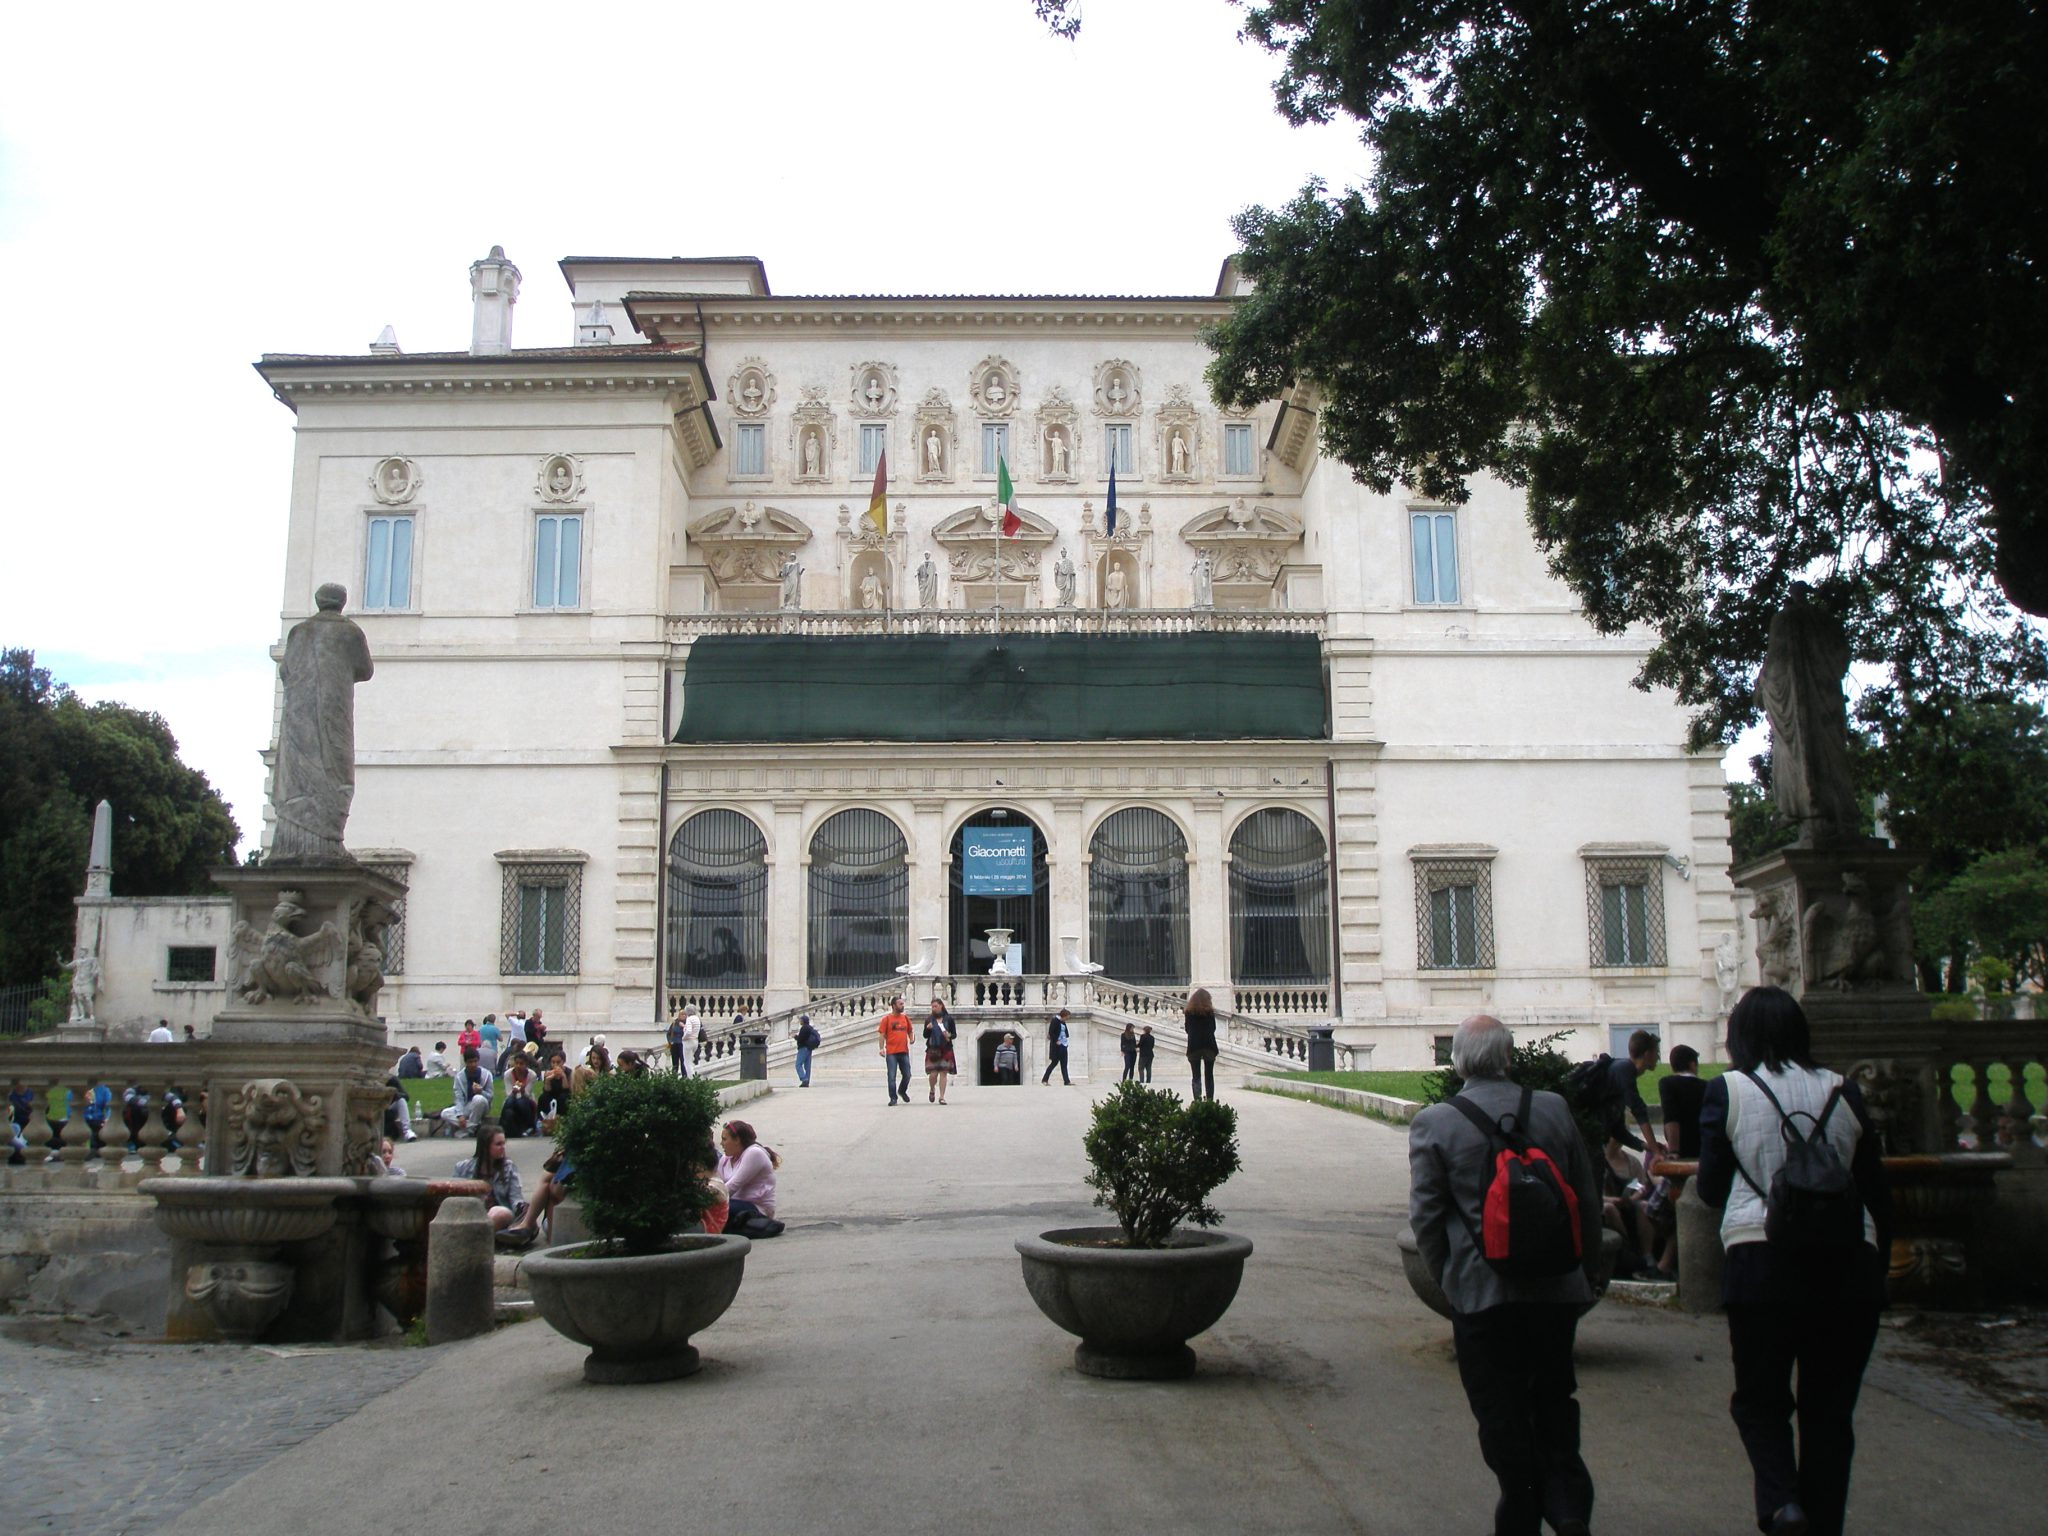 The Galleria Borghese. One enters the Galley on its south side, at basement-level, through the minuscule, central arch that's tucked beneath the double stairway which leads up to the Loggia.